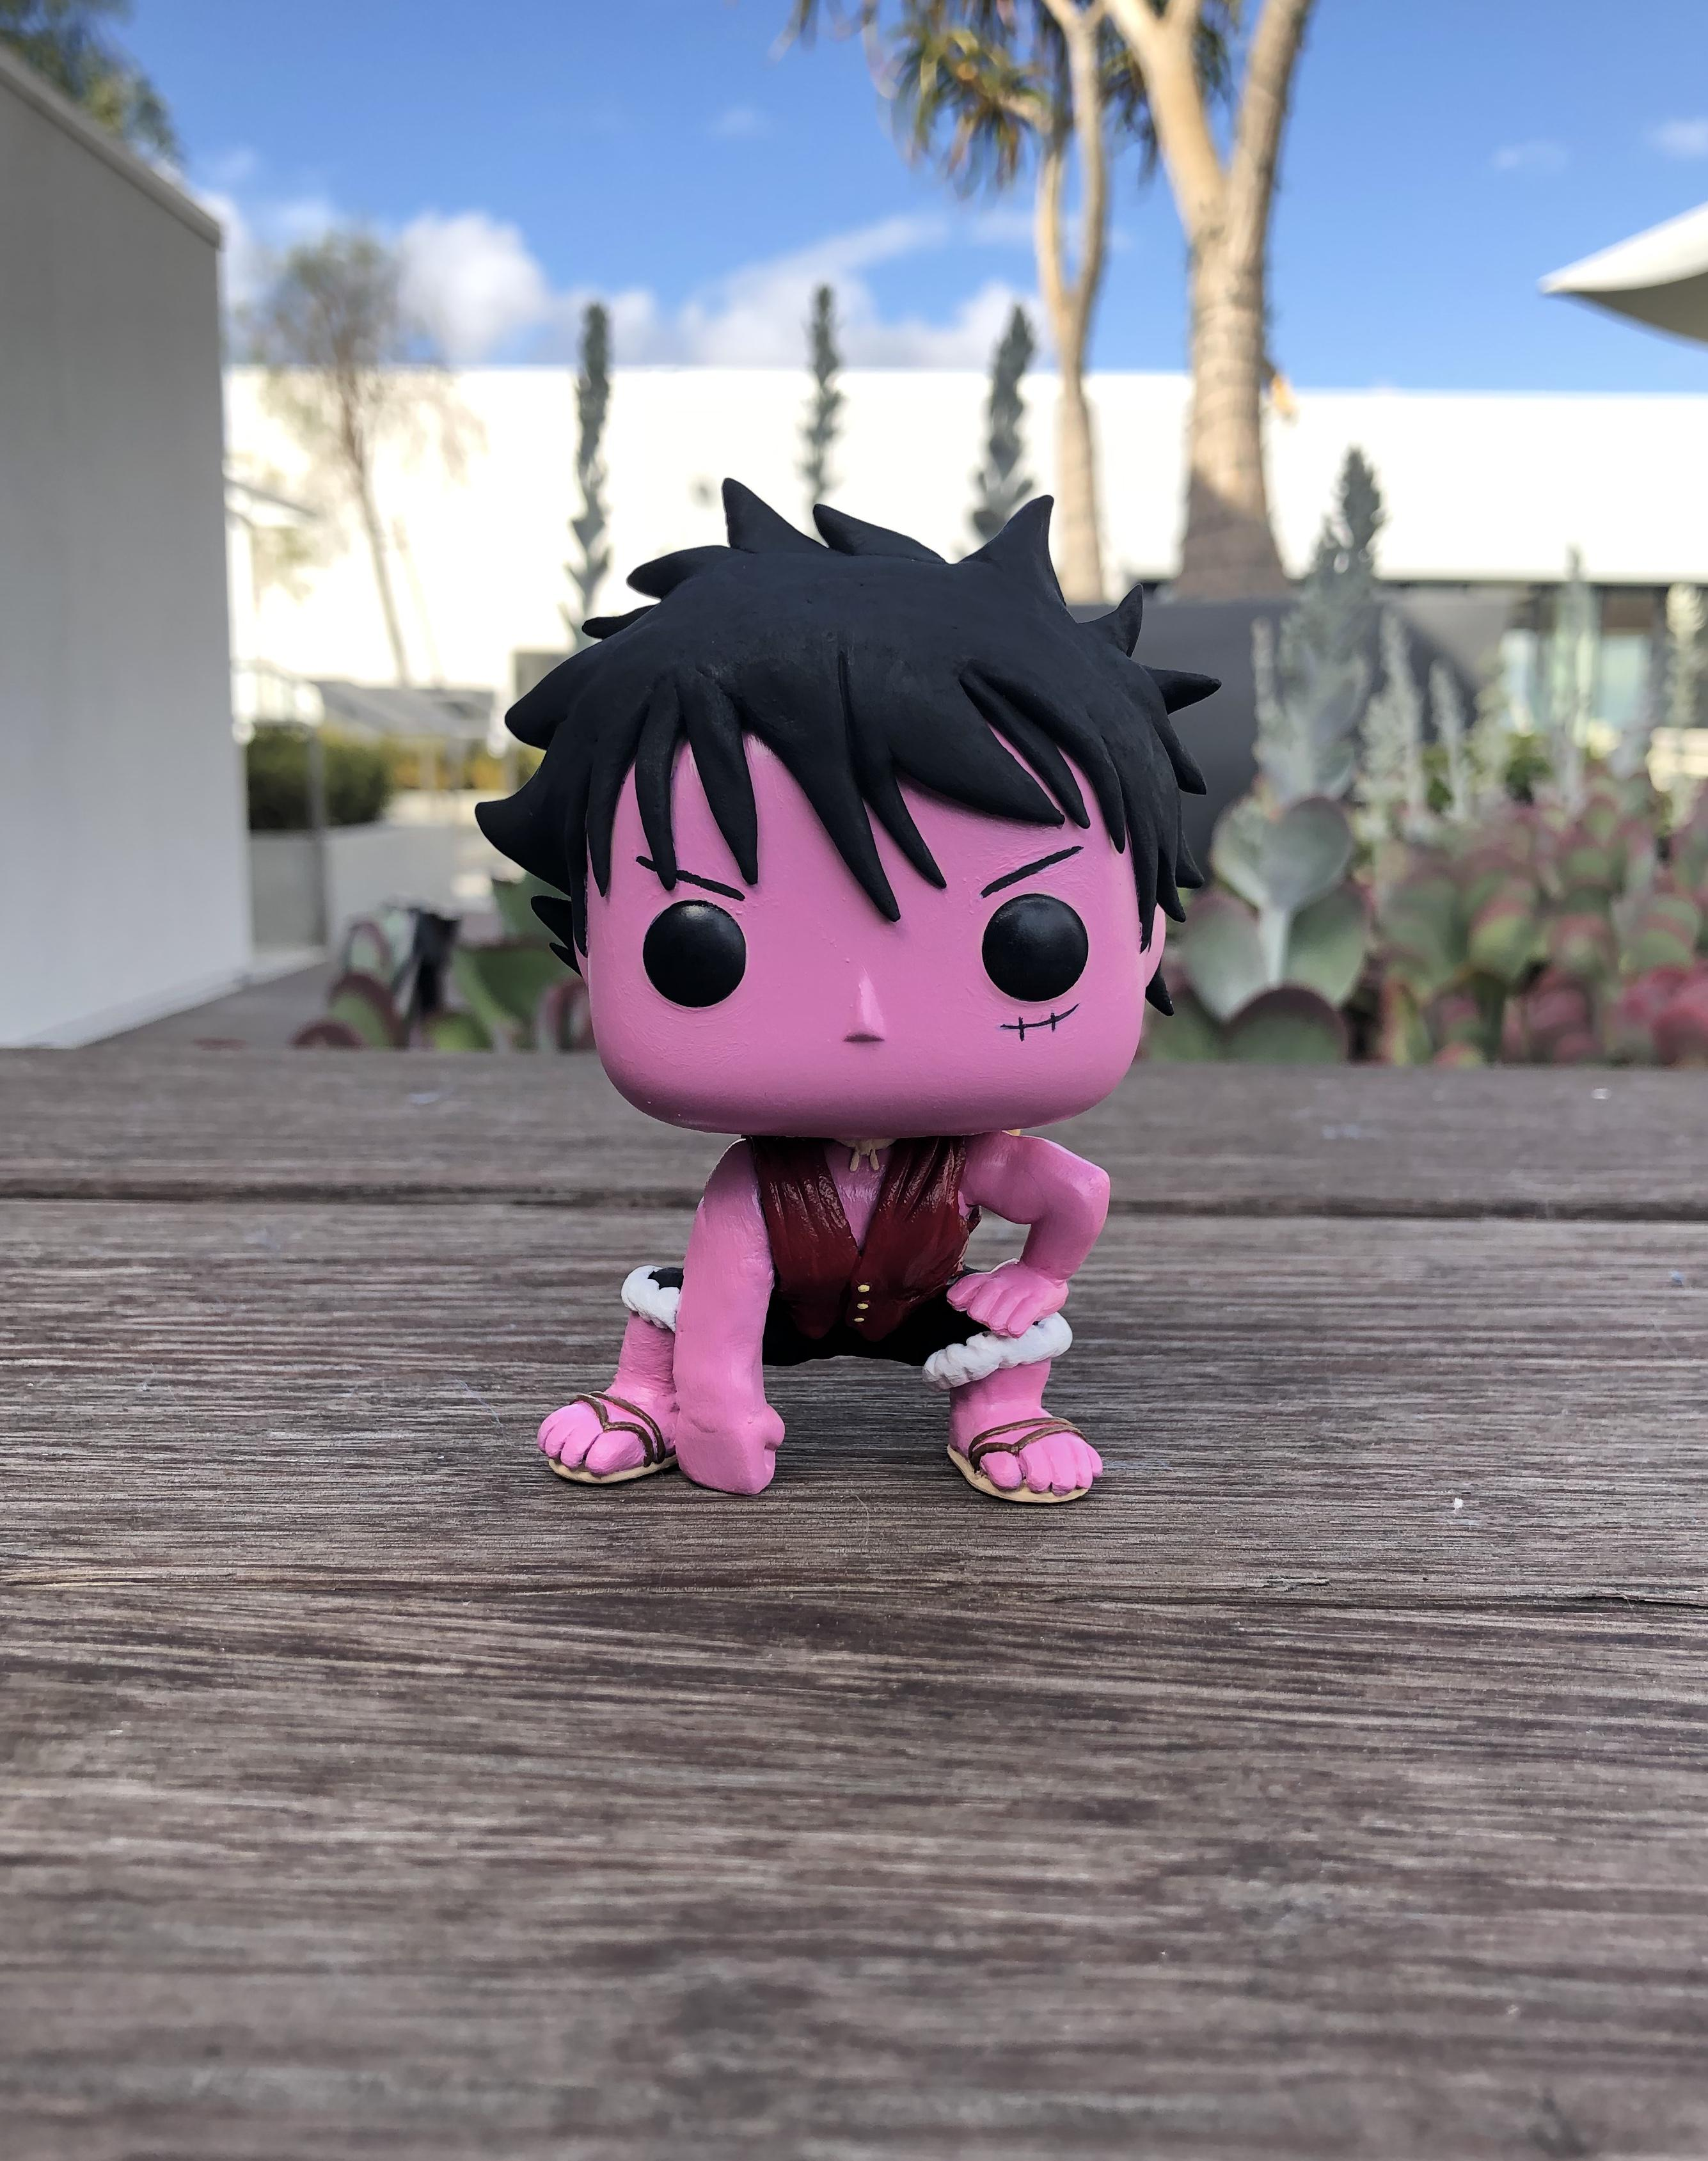 Stay tuned if you want to find it in a shop. Funko Pop One Piece Luffy Gear 4 - The Office Of Funko Pop